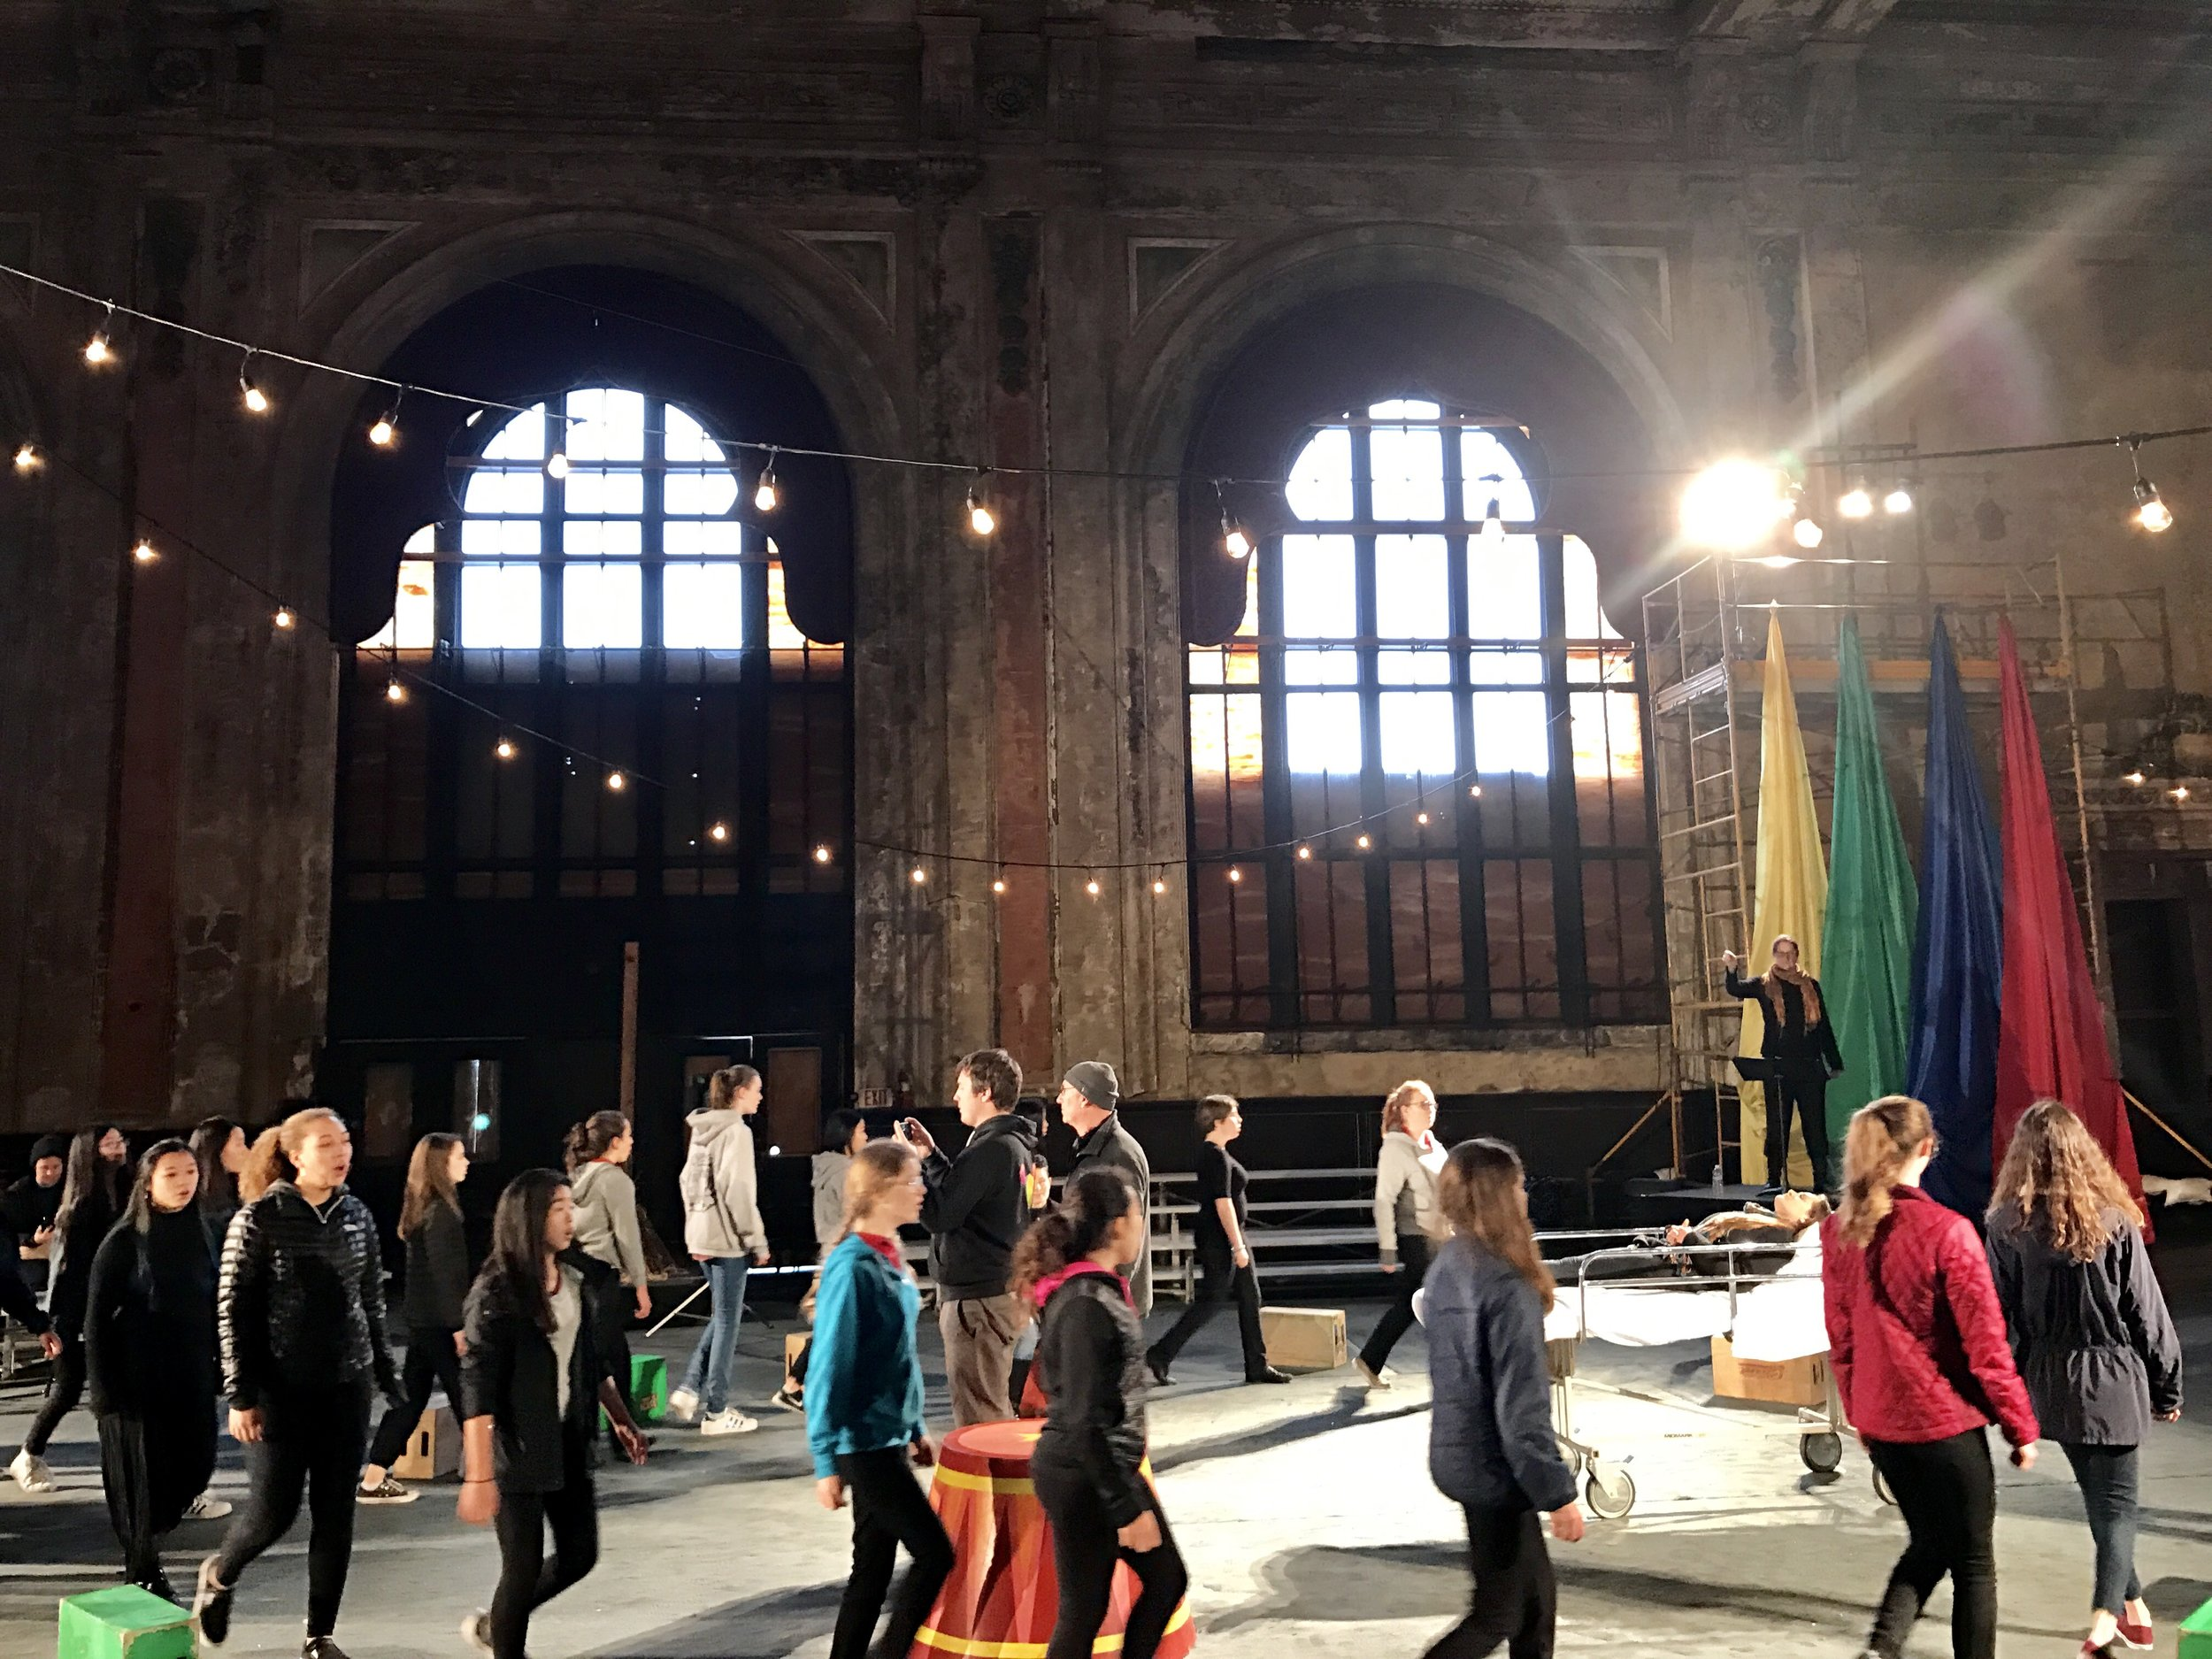 The SFGC, directed by Lisa Bielawa at the historic 16th Street Oakland Train Station, in rehearsal for the filming of Episode 11: Circus.